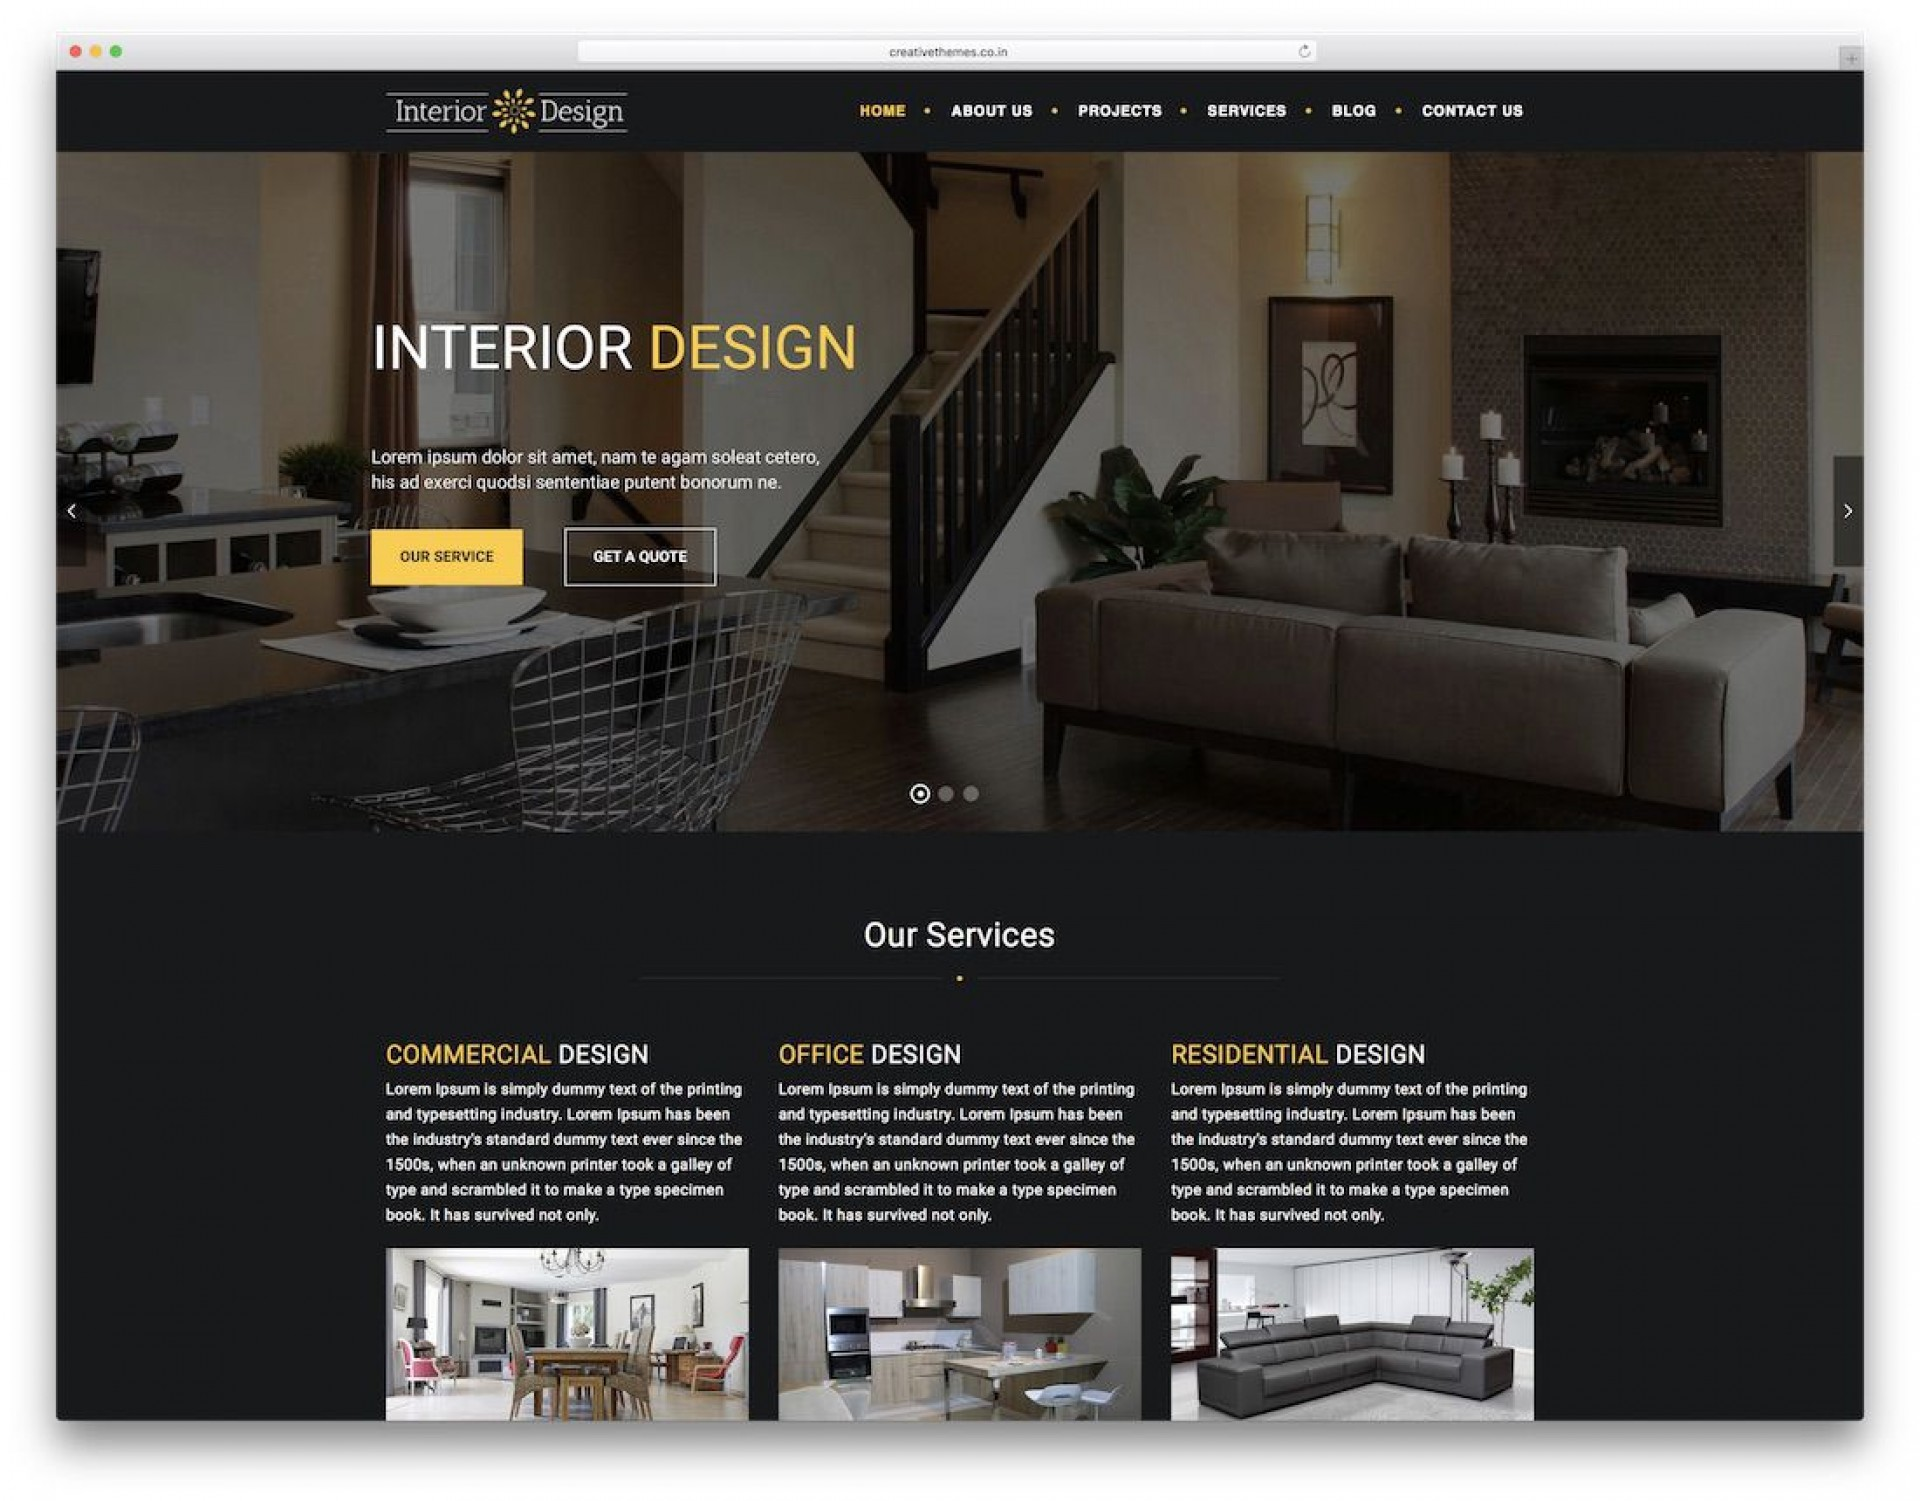 011 Awesome Interior Design Website Template High Definition  Templates Company Free Download Html1920